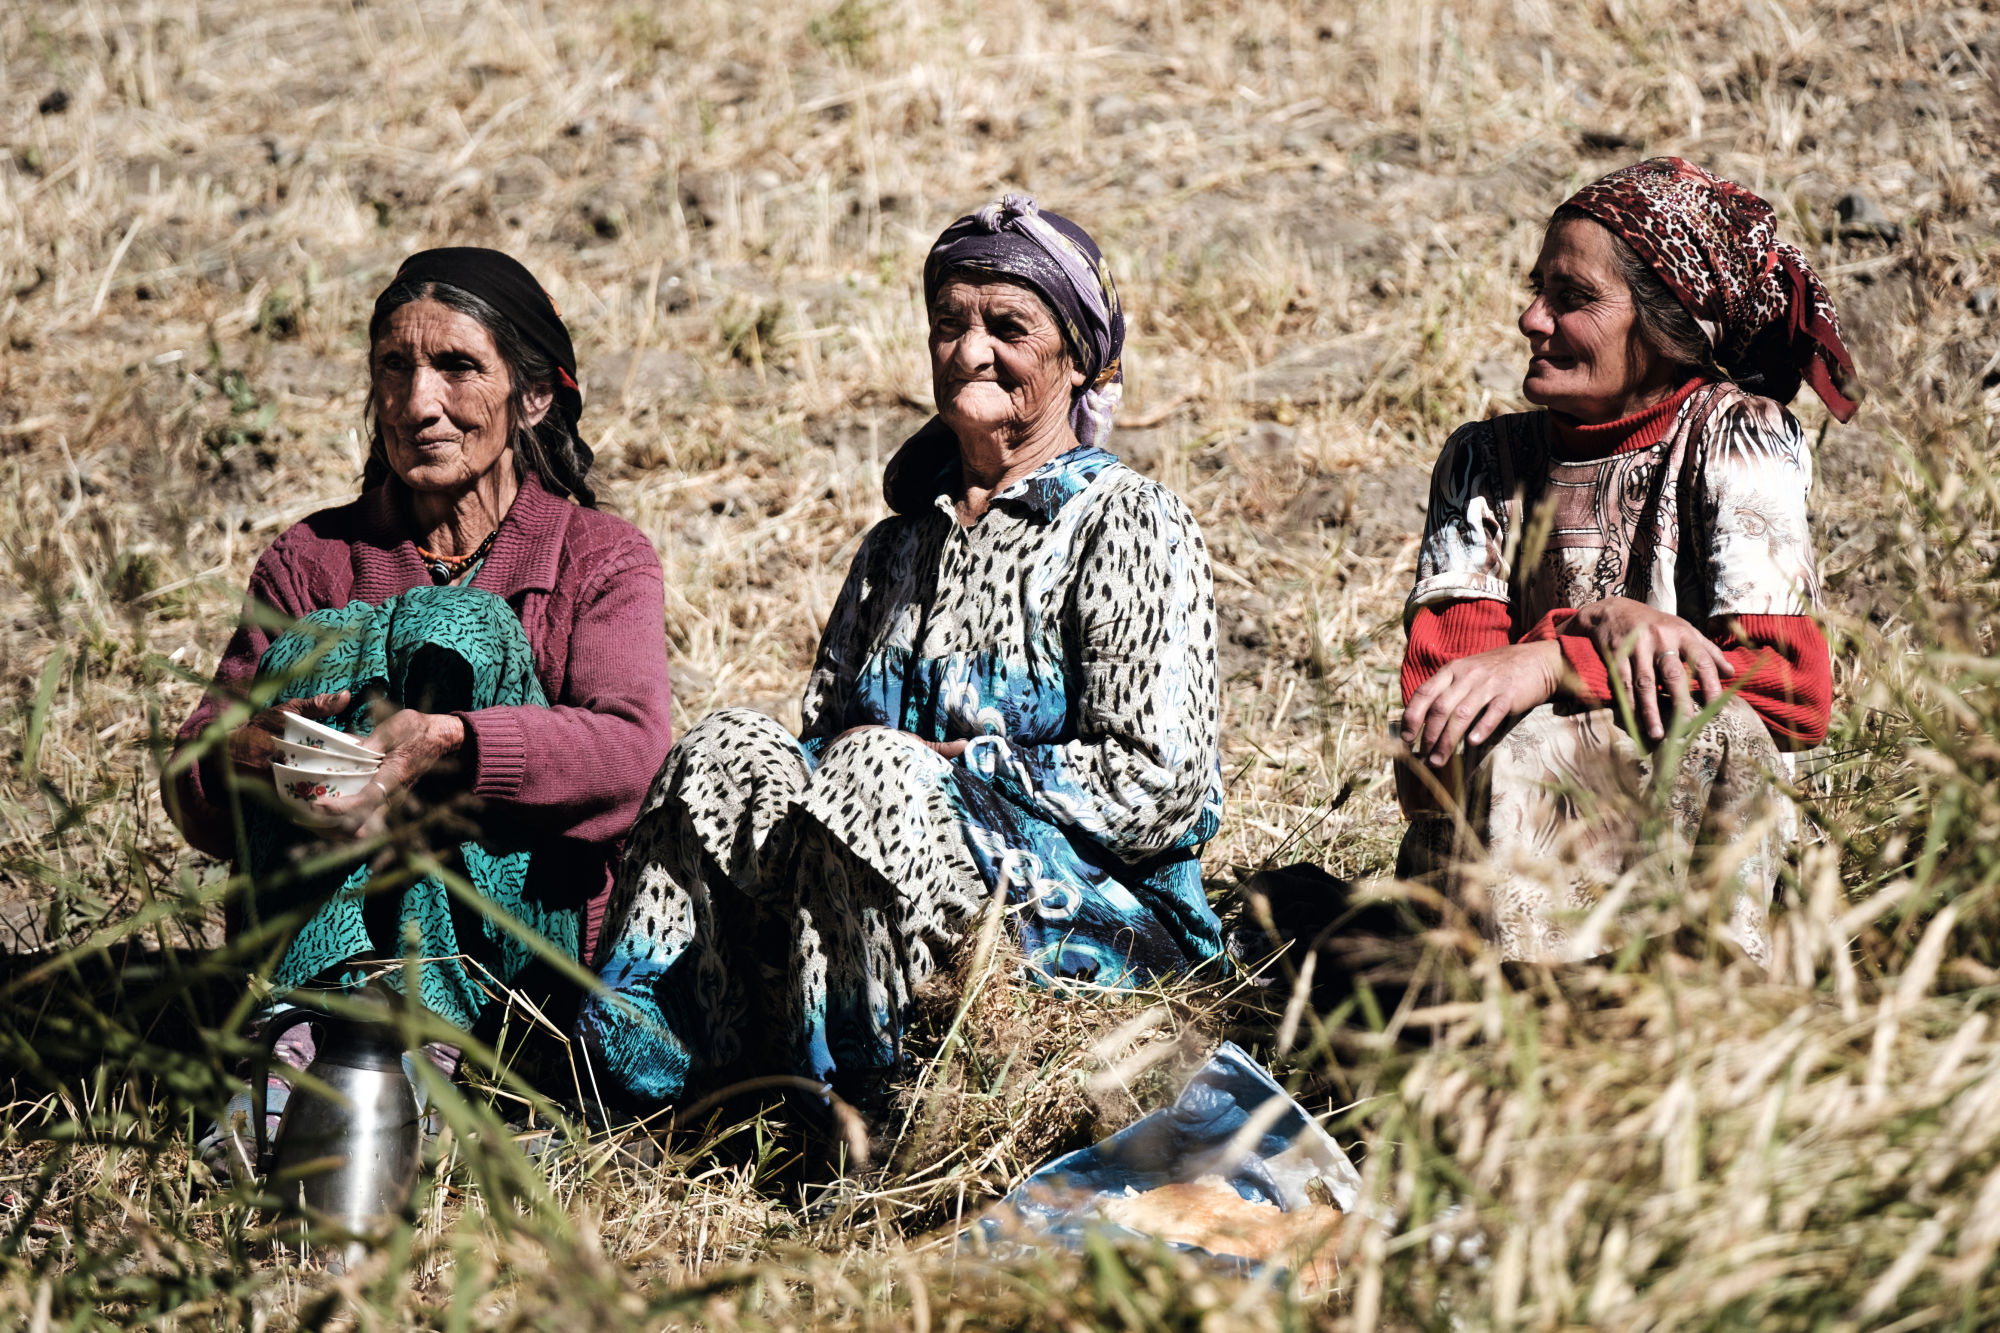 Swarovski Optik New perspectives – Tajikistan tree women sitting nature conservation